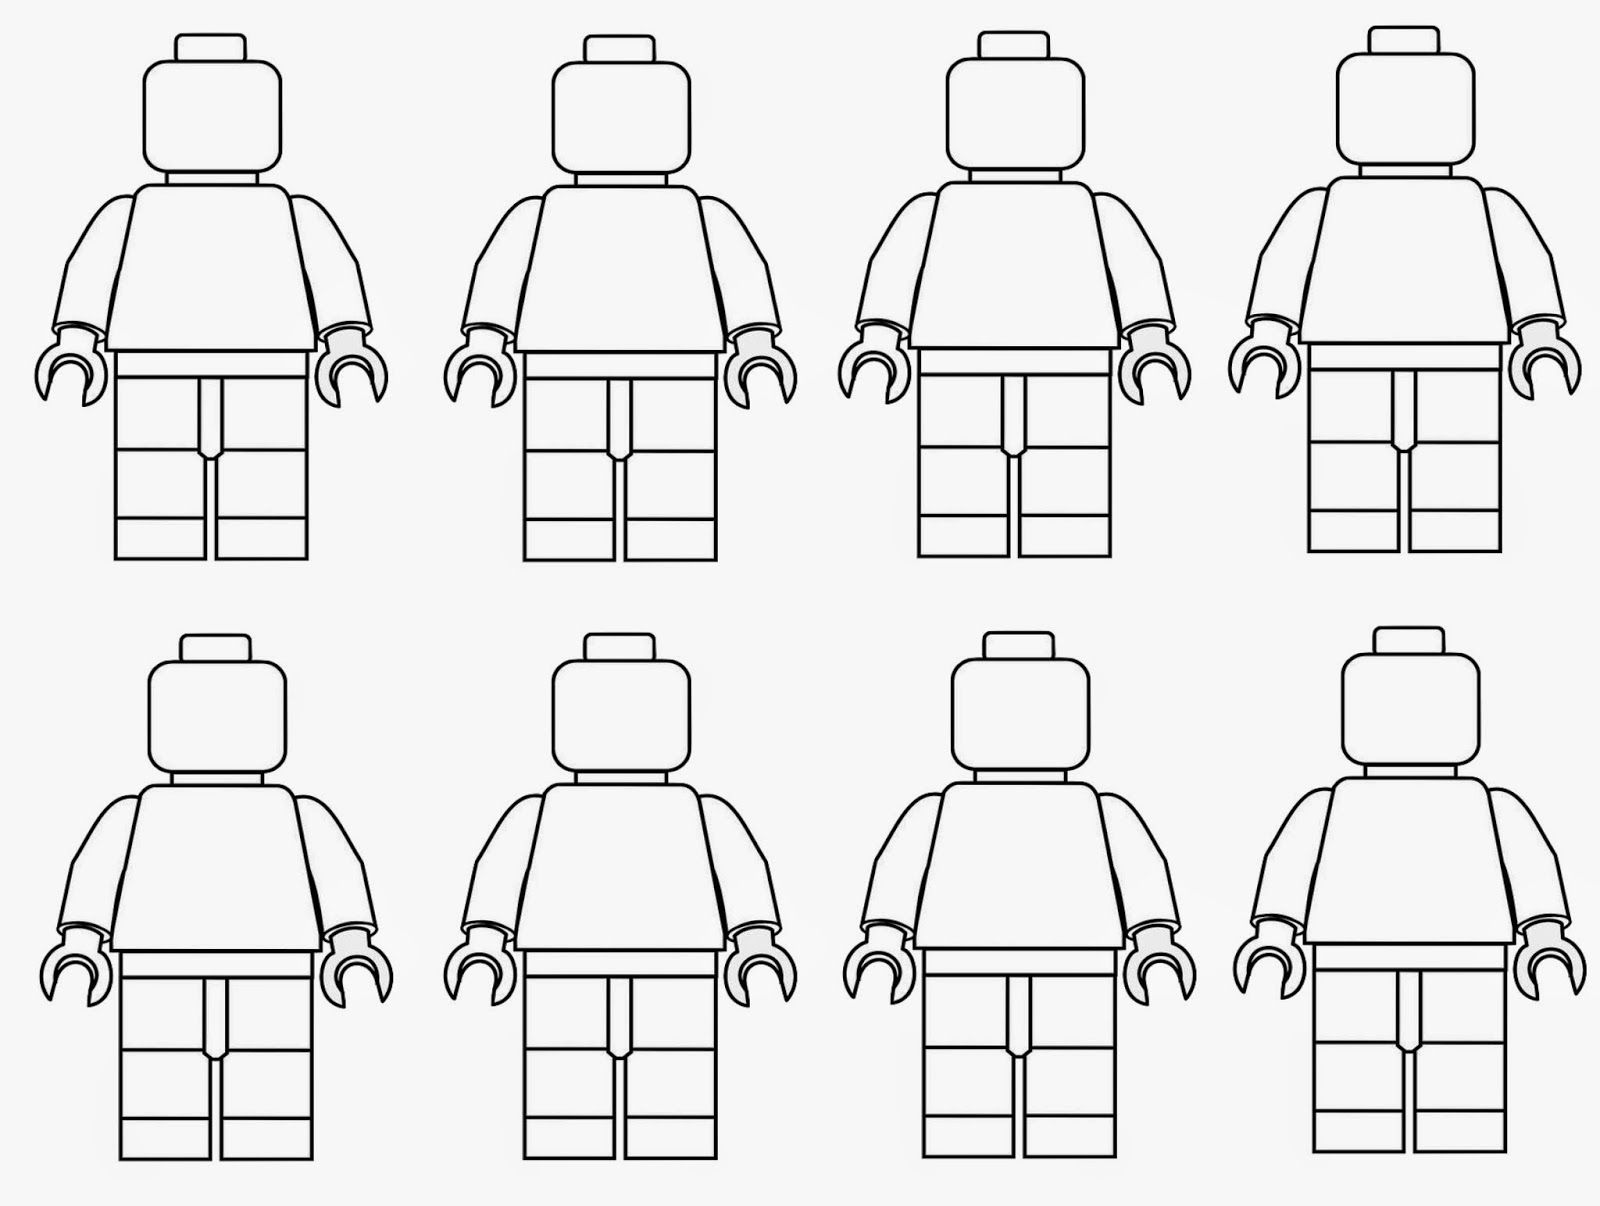 Spring Time Treats Lego Men Coloring Page Lego Coloring Pages Lego Coloring Lego Man